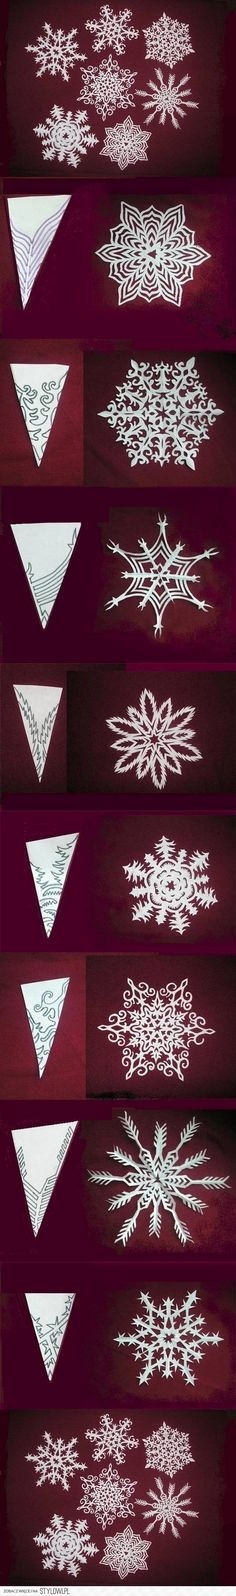 Schneeflocken Aus Papier Schneiden Luxus 90 Best Winter Bastelei Images On Pinterest